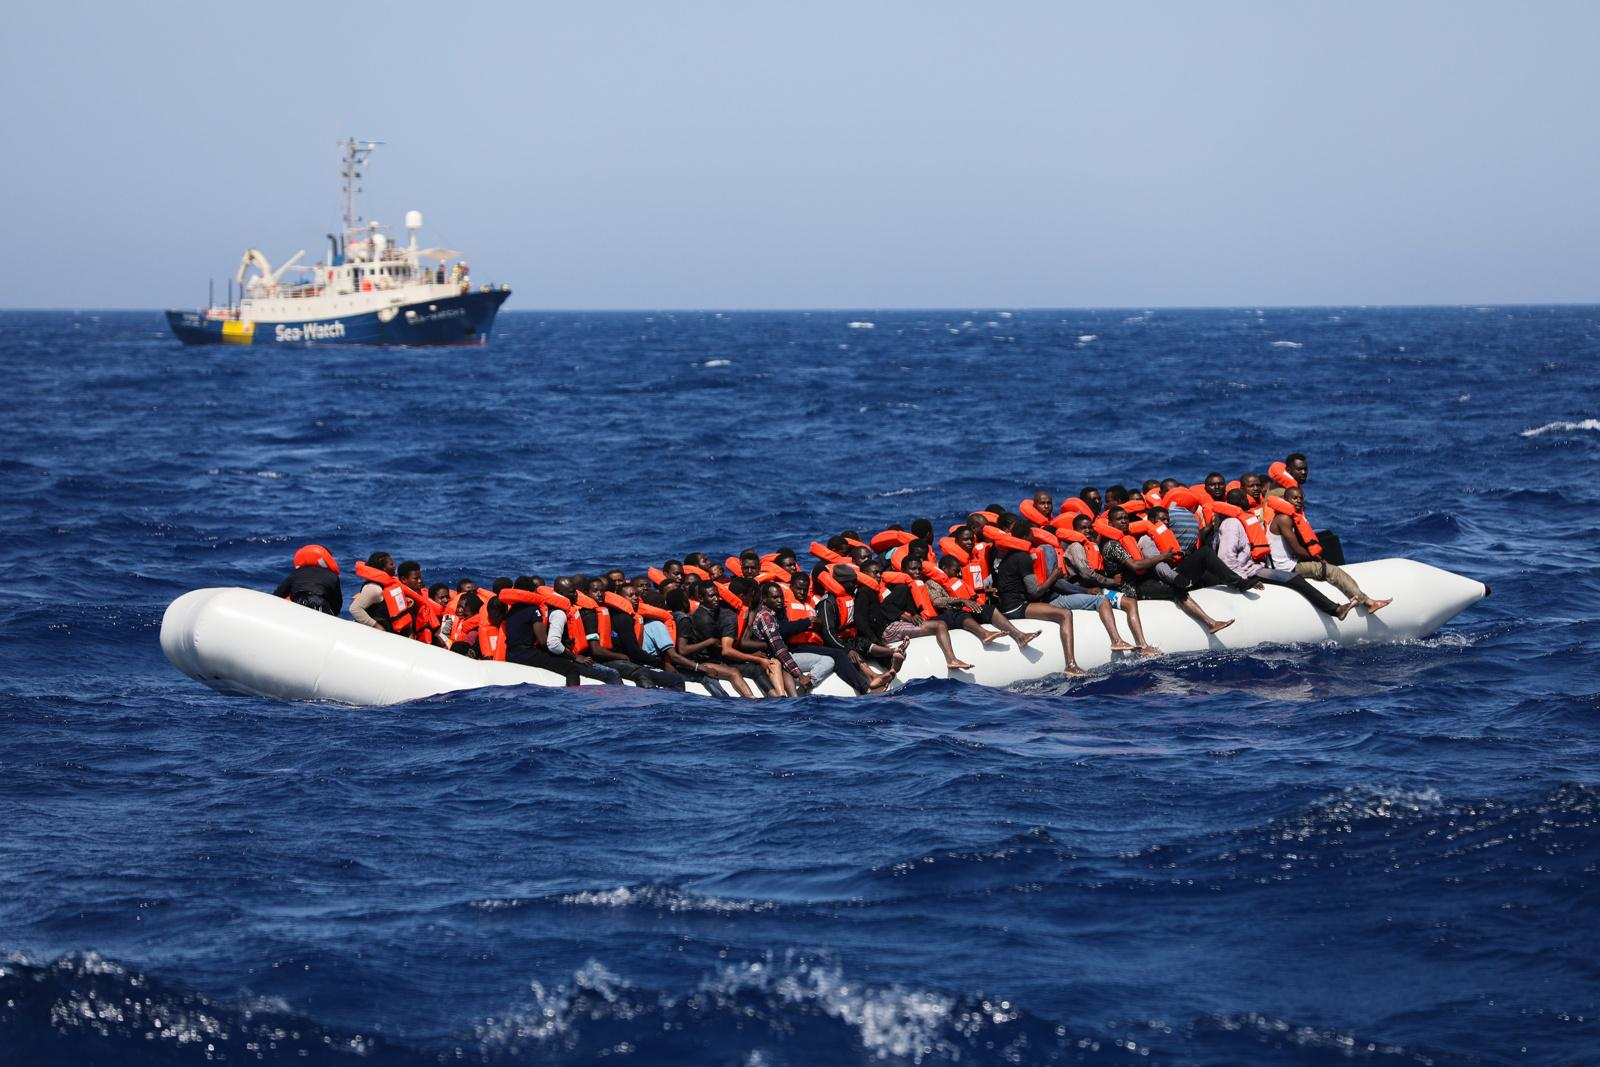 Refugees sit on a dinghy wearing life jackets that they were given by NGO workers, while the rescue vessel 'Sea Watch' is seen in the background, on the Mediterranean sea off the Libyan coast, June 03, 2017. Two rescue vessels were involved in the rescue mission, 'Sea Watch' and 'Vos Hestia', which took the refugees on board. The sea journey took the lives of four migrants. The Central Mediterranean route is the world's deadliest migration route. Of the estimated 3,080 people that have died or gone missing while trying to reach Europe by sea via the three Mediterranean routes until end of November 2017, over 94% of deaths have occurred from North Africa to Italy, according to UNHCR. Over 117,000 refugees and migrants arrived in Italy by sea in 2017, about 32% less compared to 2016.